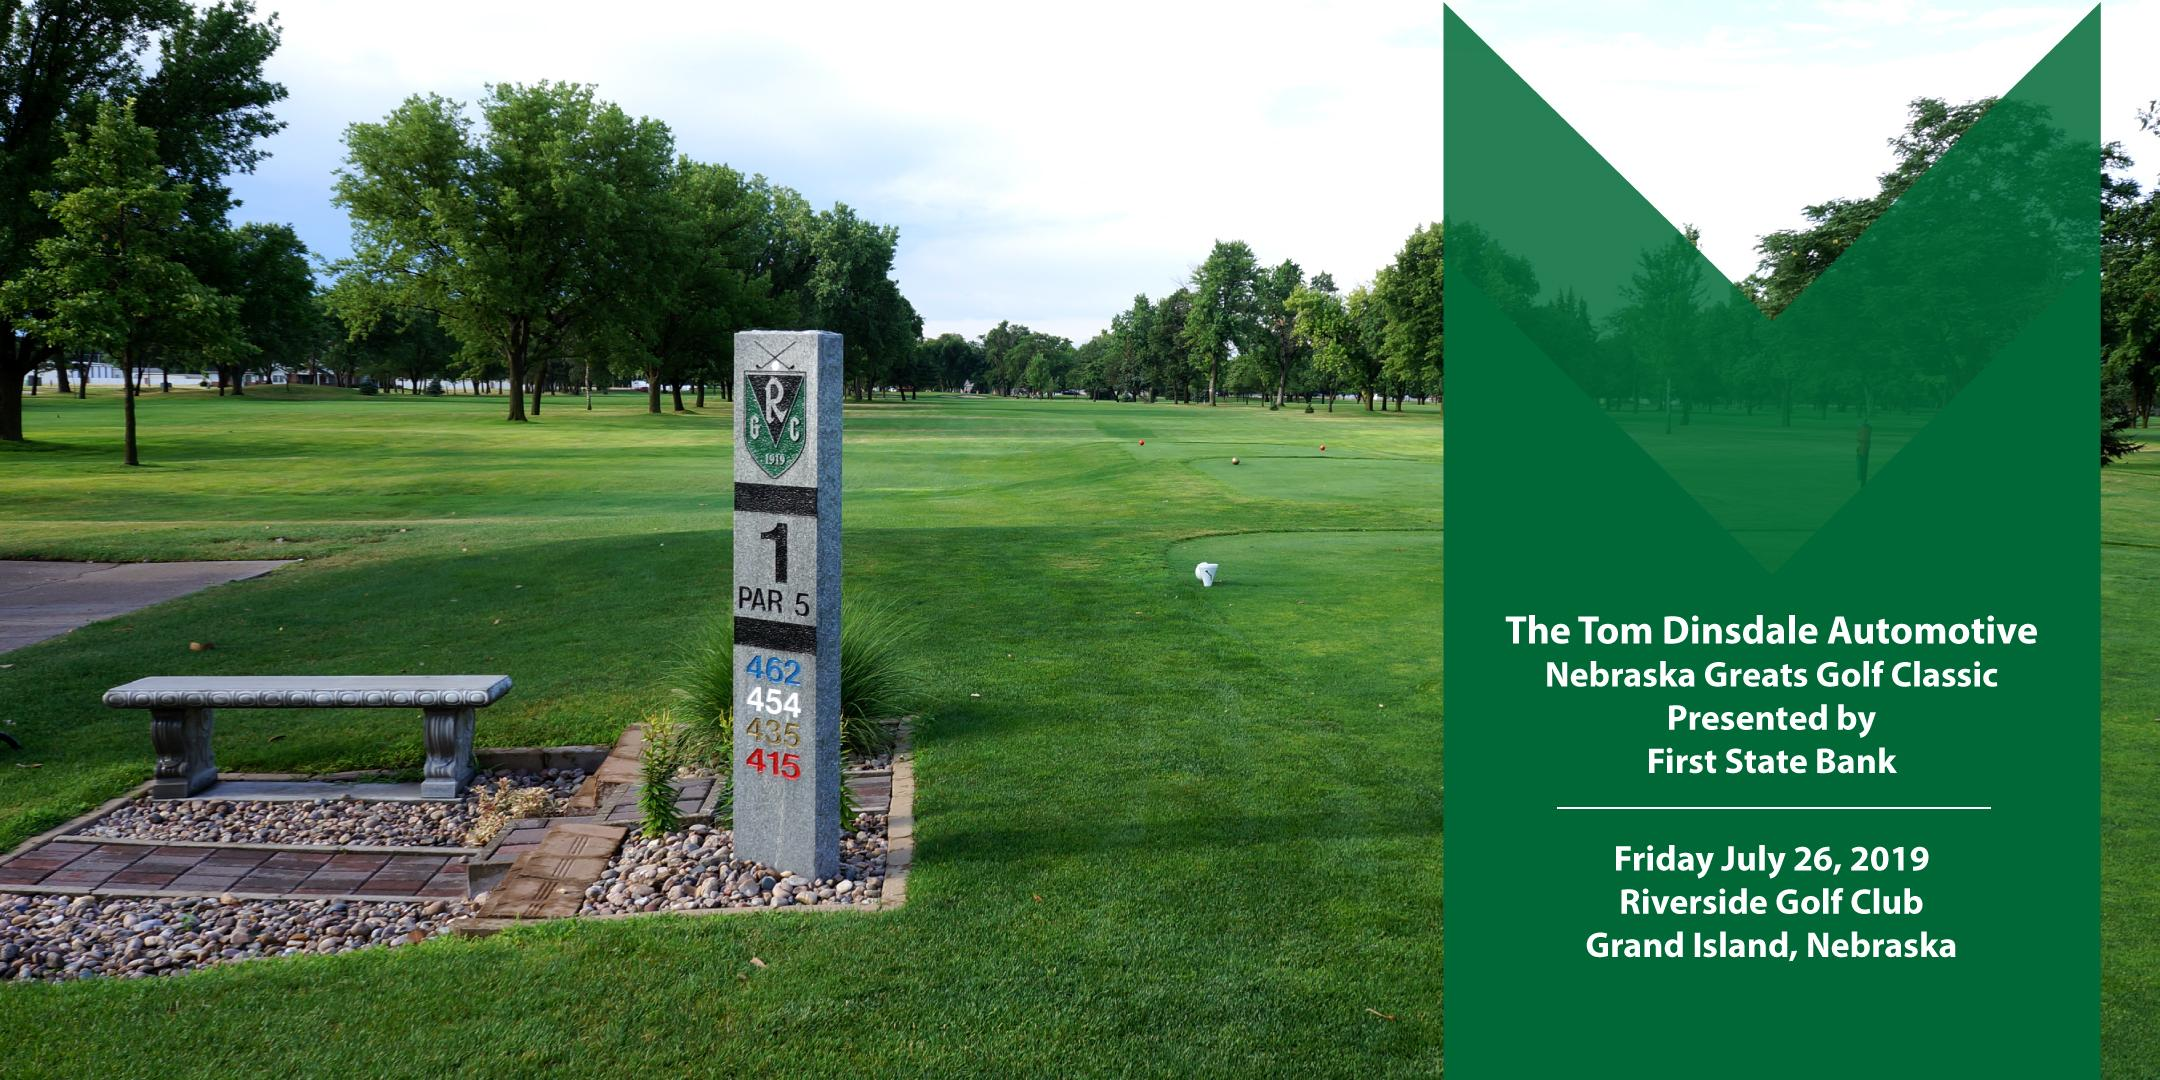 The Tom Dinsdale Automotive NGF Golf Classic Presented by First State Bank